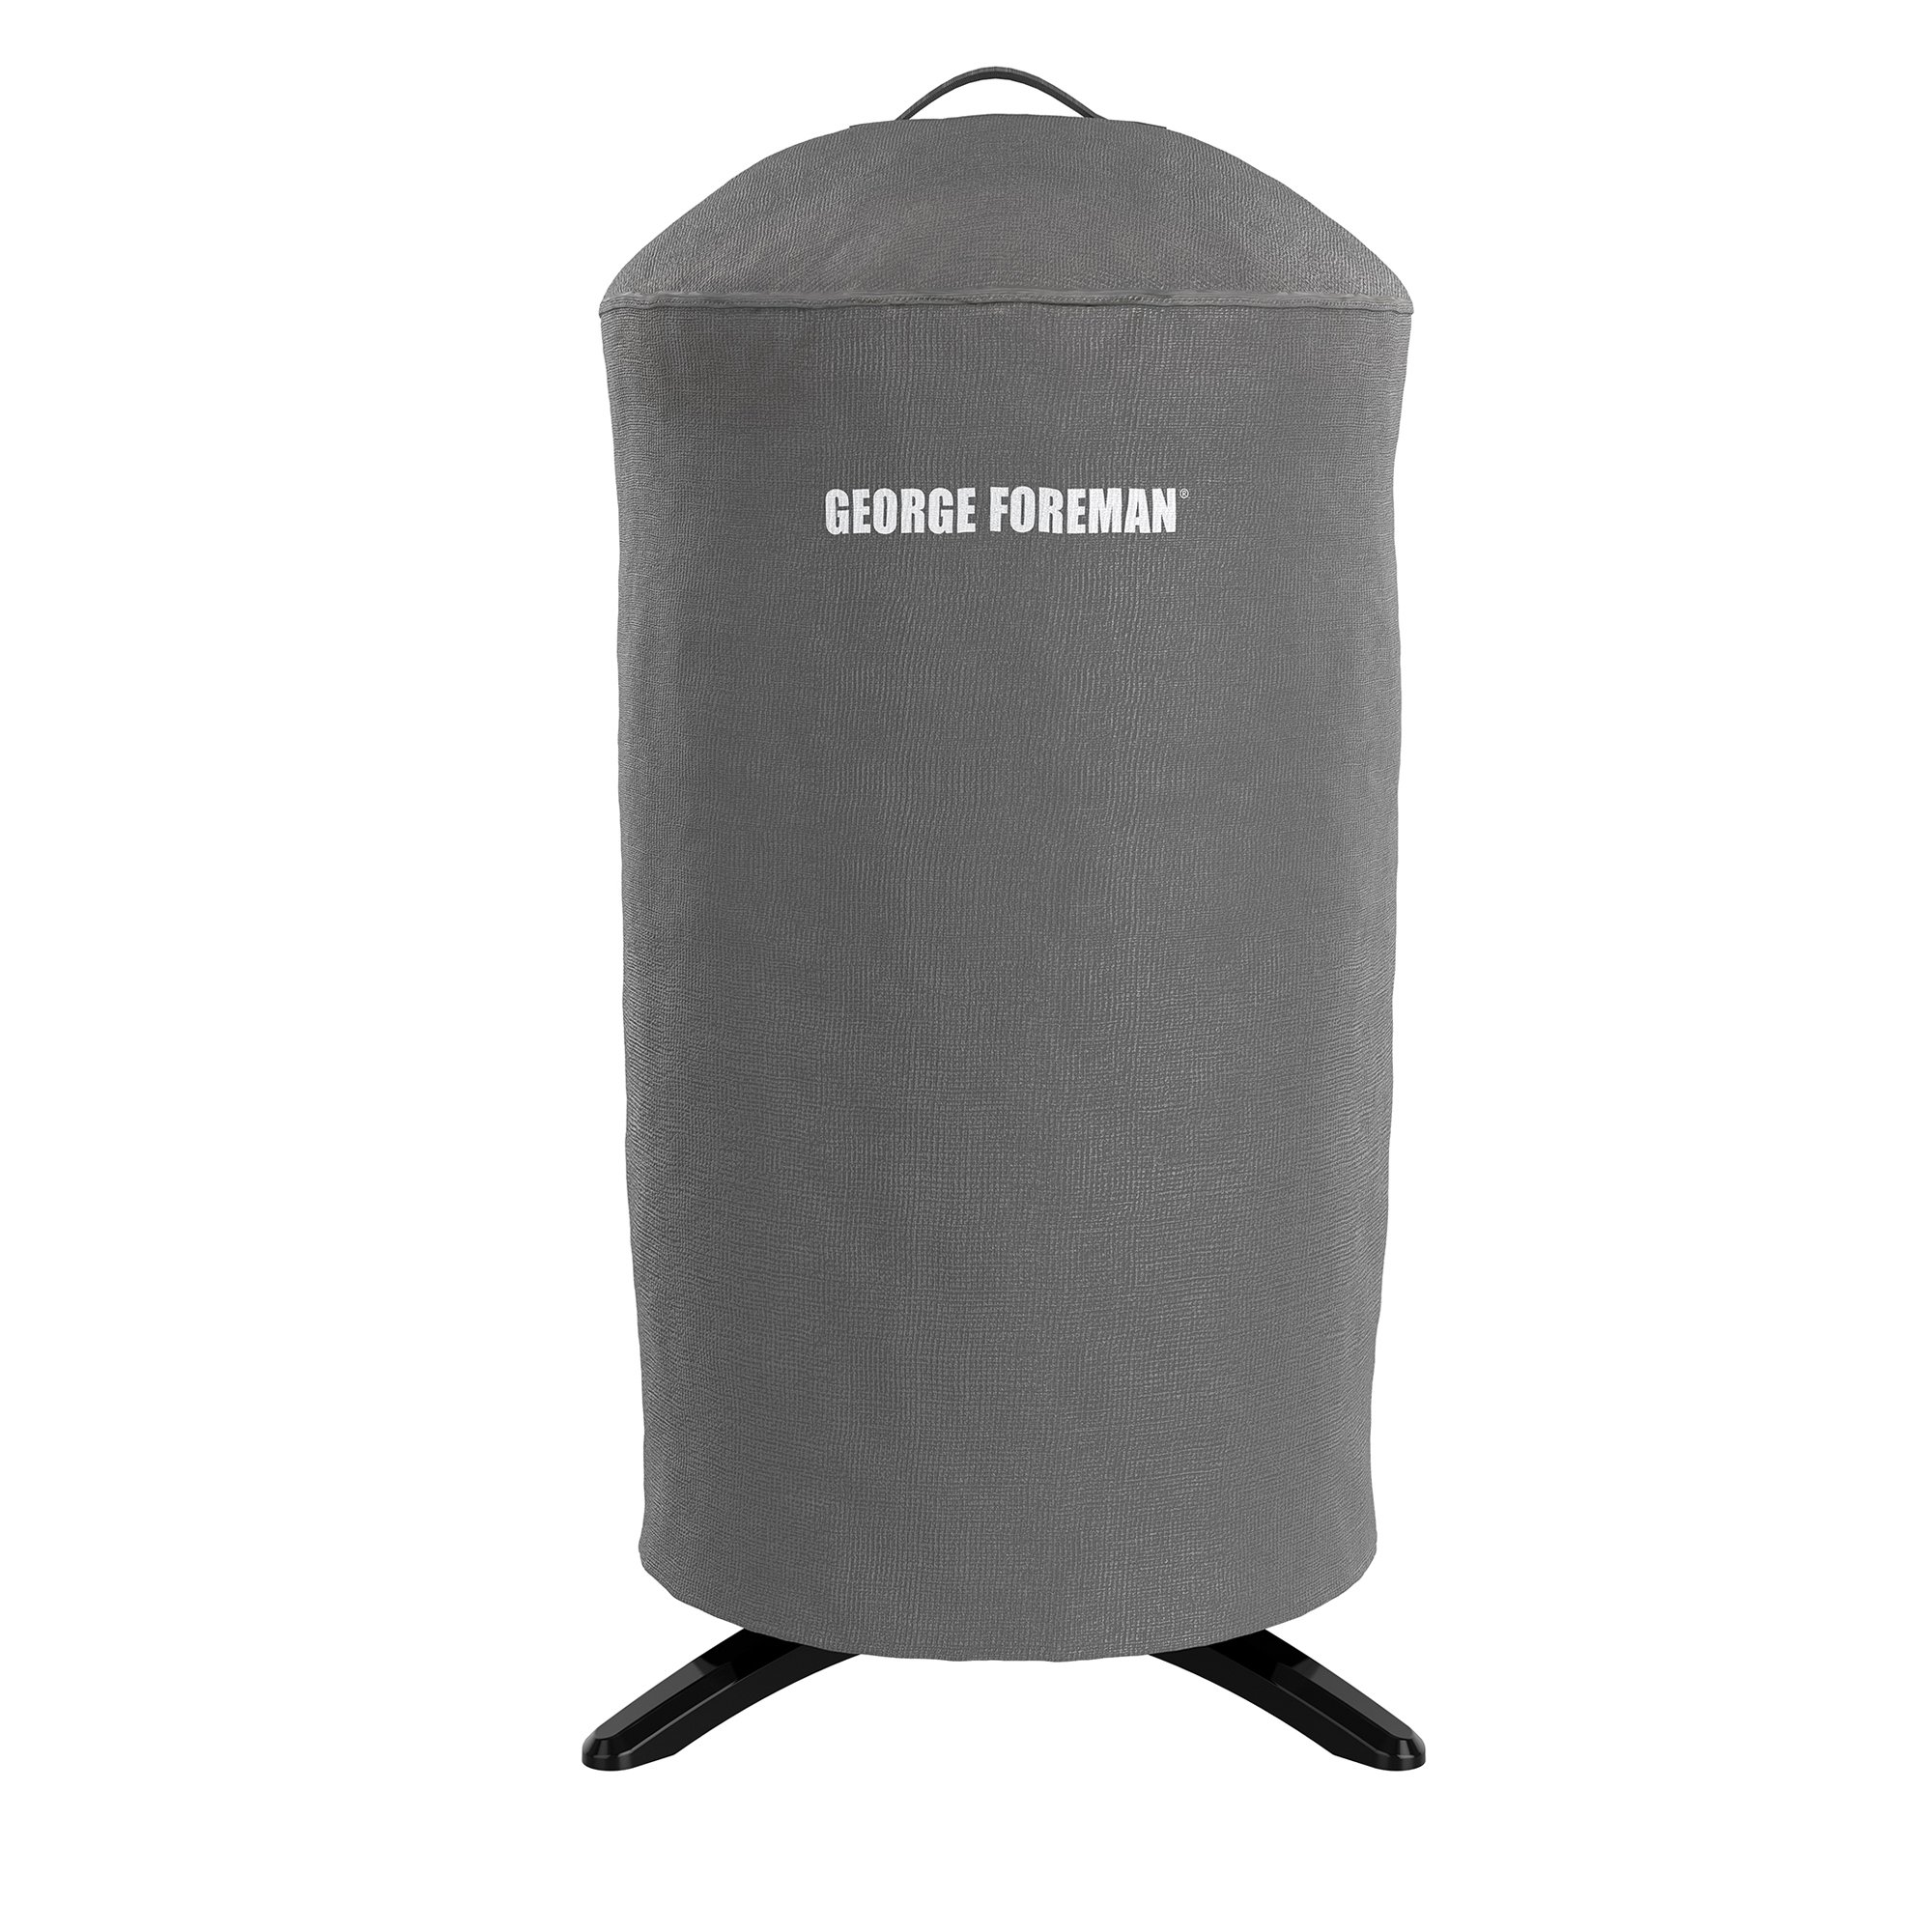 George Foreman GFA0240RDCG Round Grill Cover, Gray by George Foreman